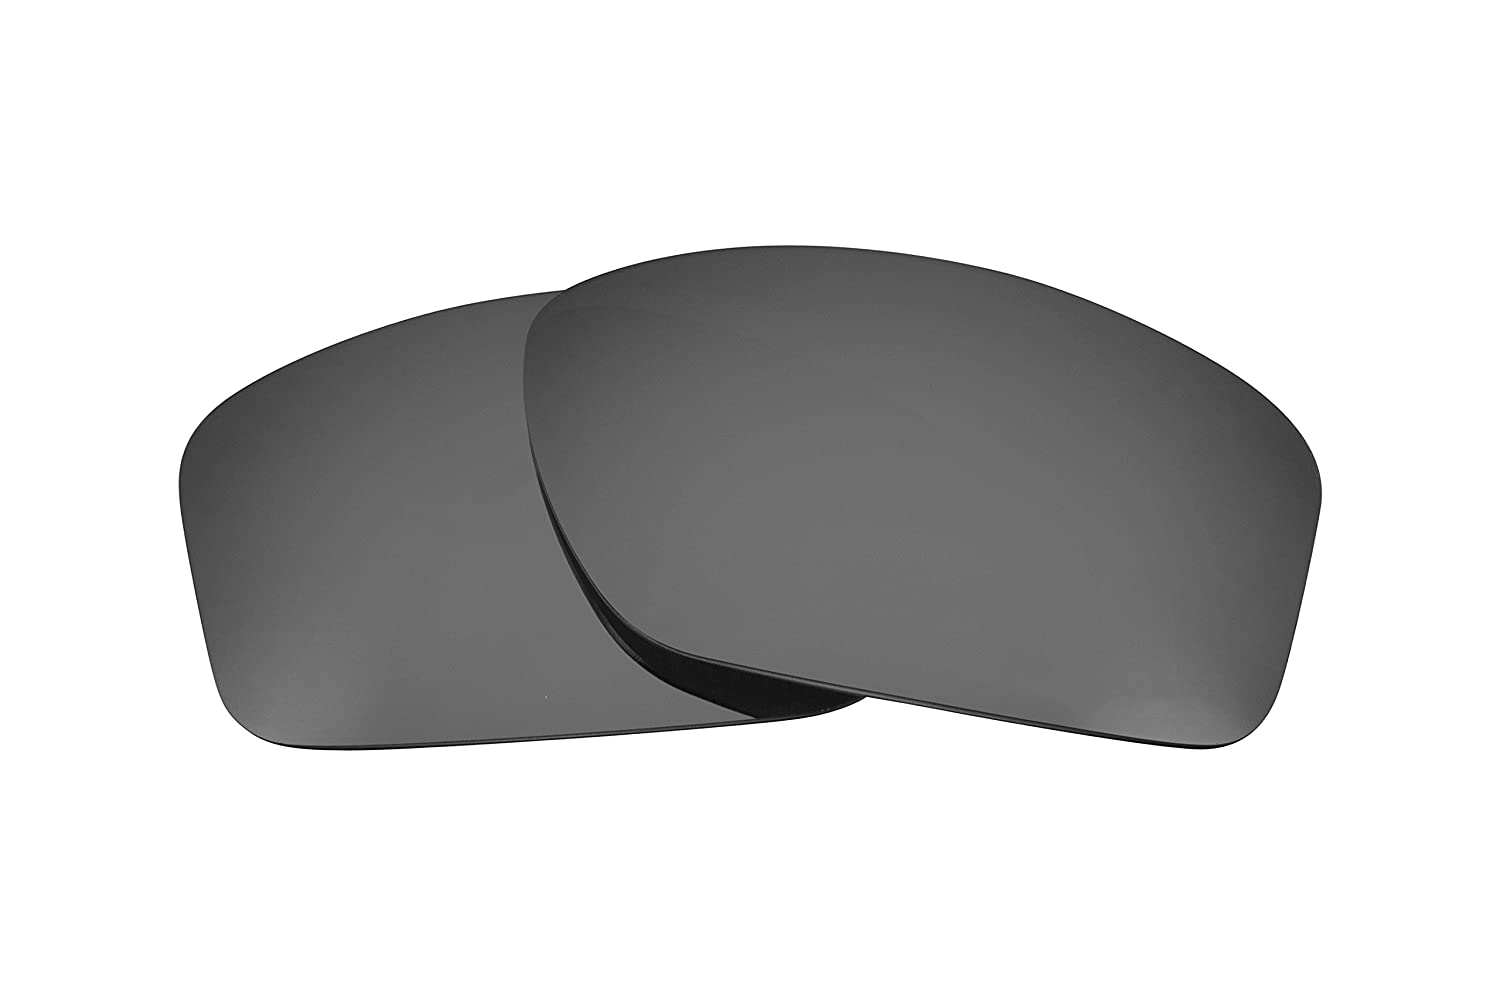 c7f28e5550 Best SEEK Polarized Replacement Lenses for Oakley VALVE Silver Mirror   Amazon.co.uk  Clothing